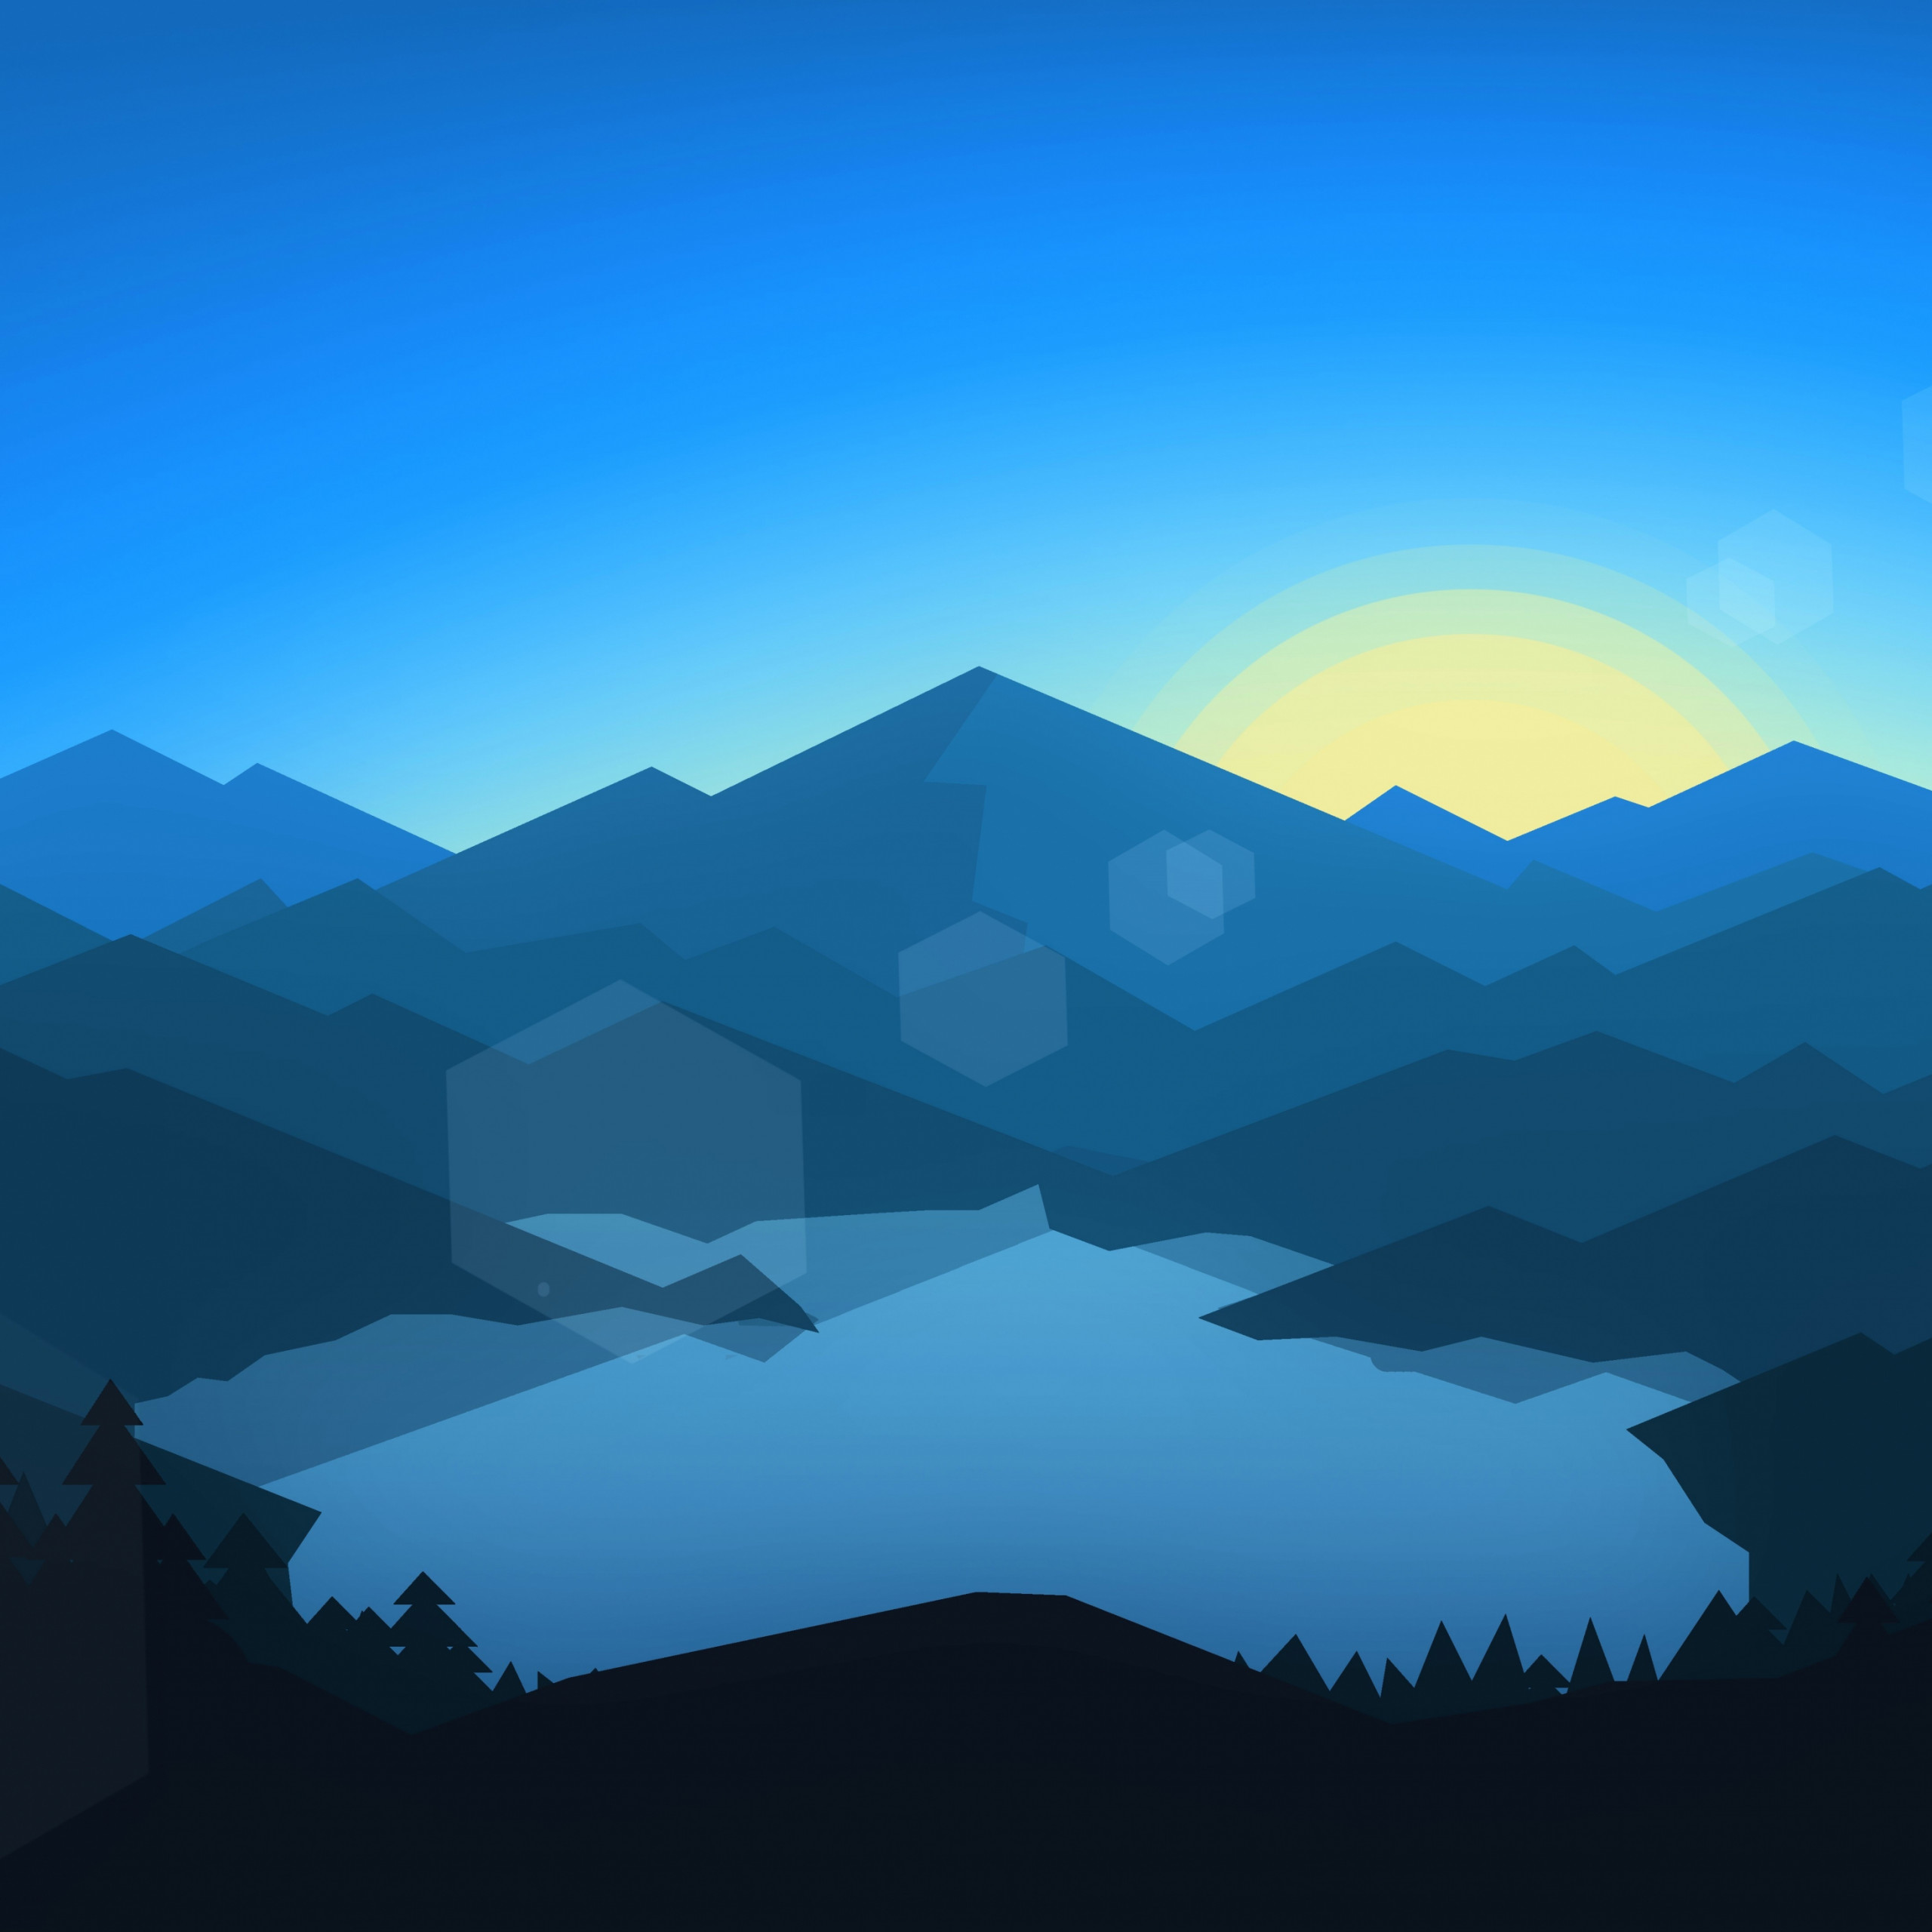 forest mountains sunset cool weather minimalism 7a22c5